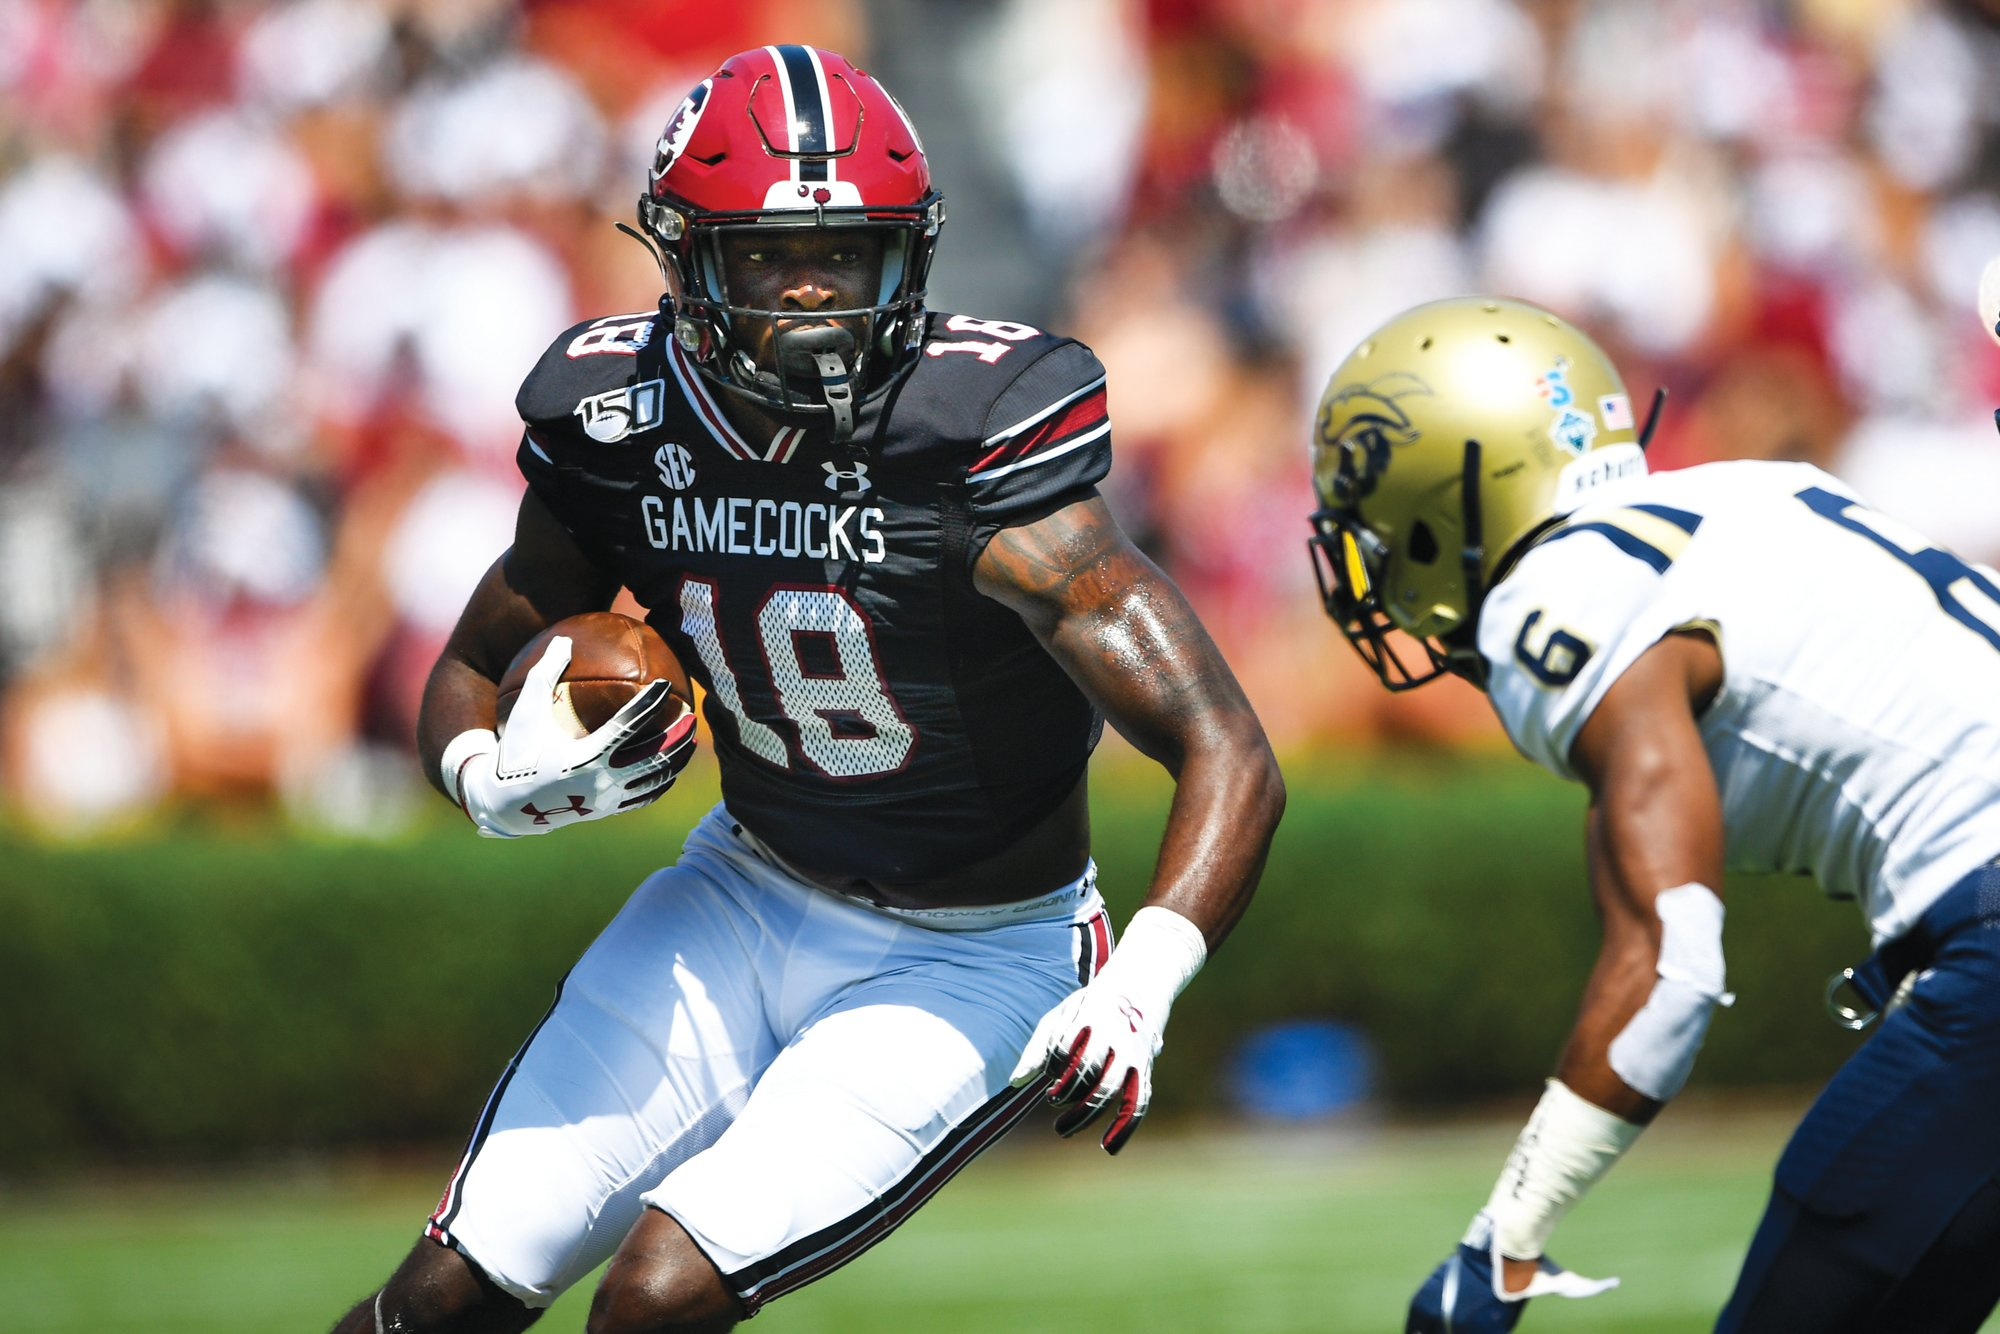 South Carolina wide receiver Or'Tre Smith (18) opted out of the 2020 season on Friday due to concerns about the coronavirus.